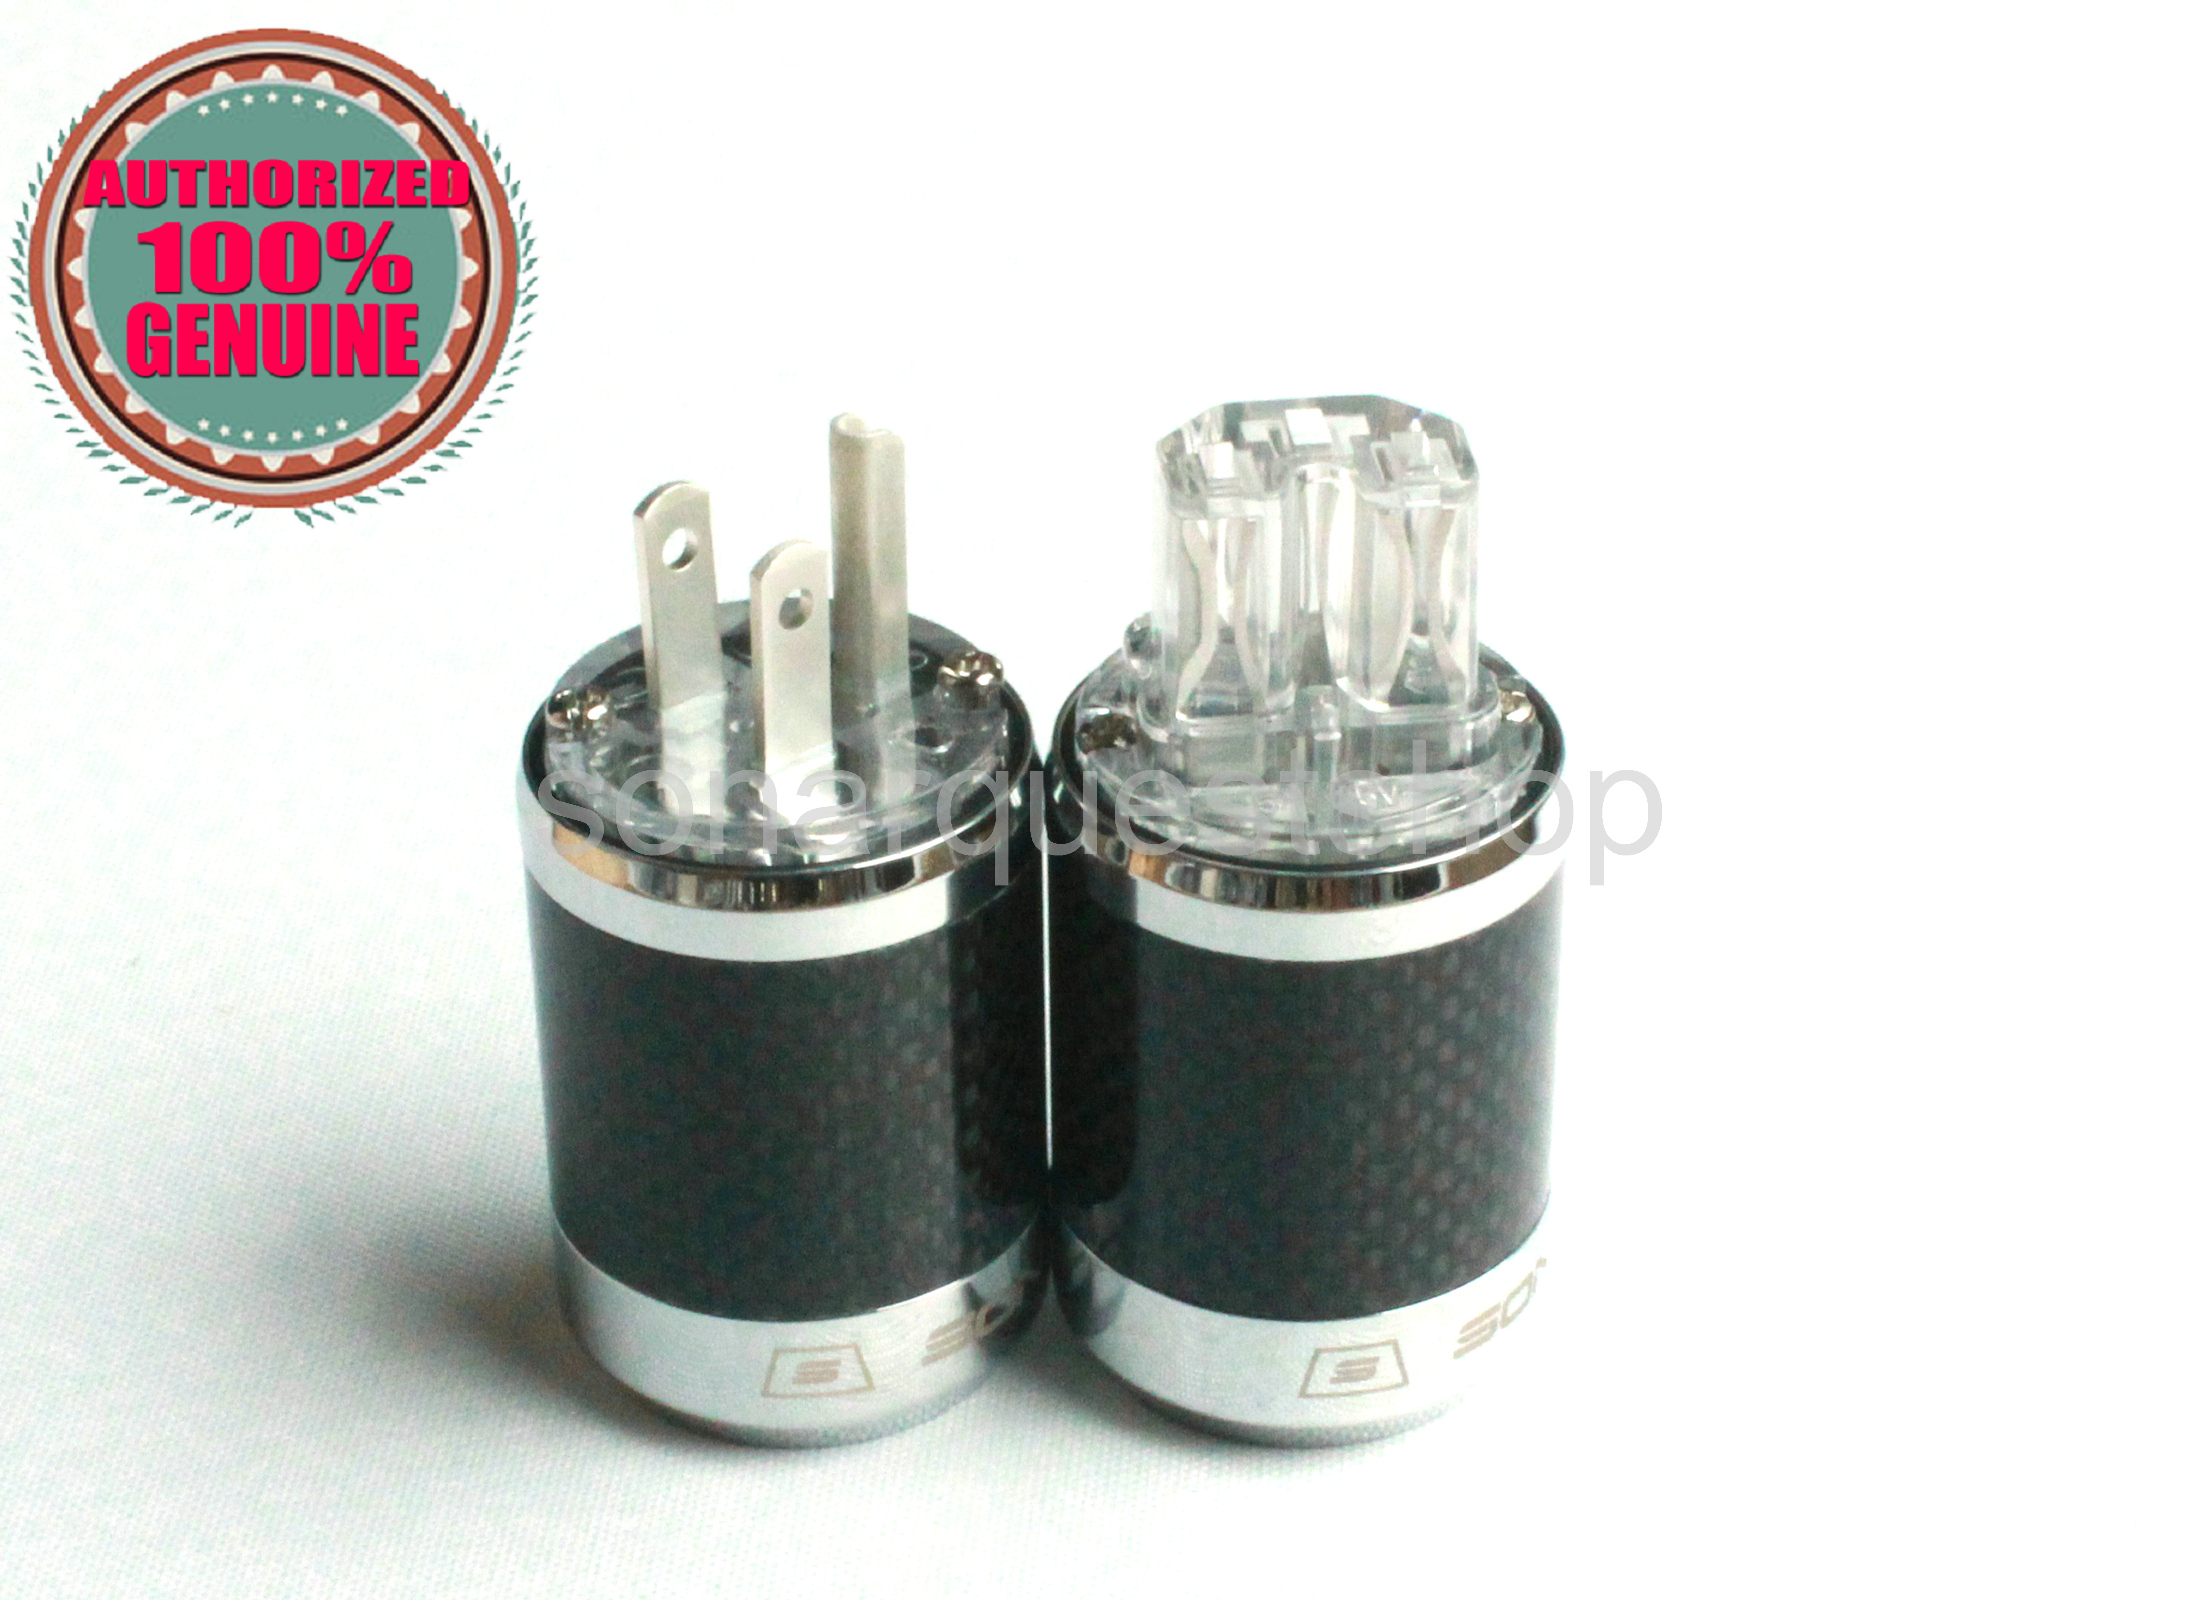 PYK SONARQUEST SQ-P39(Ag)T + SQ-C39(Ag)T US silver Plated UT Carbon fiber Power Plug & IEC Connector